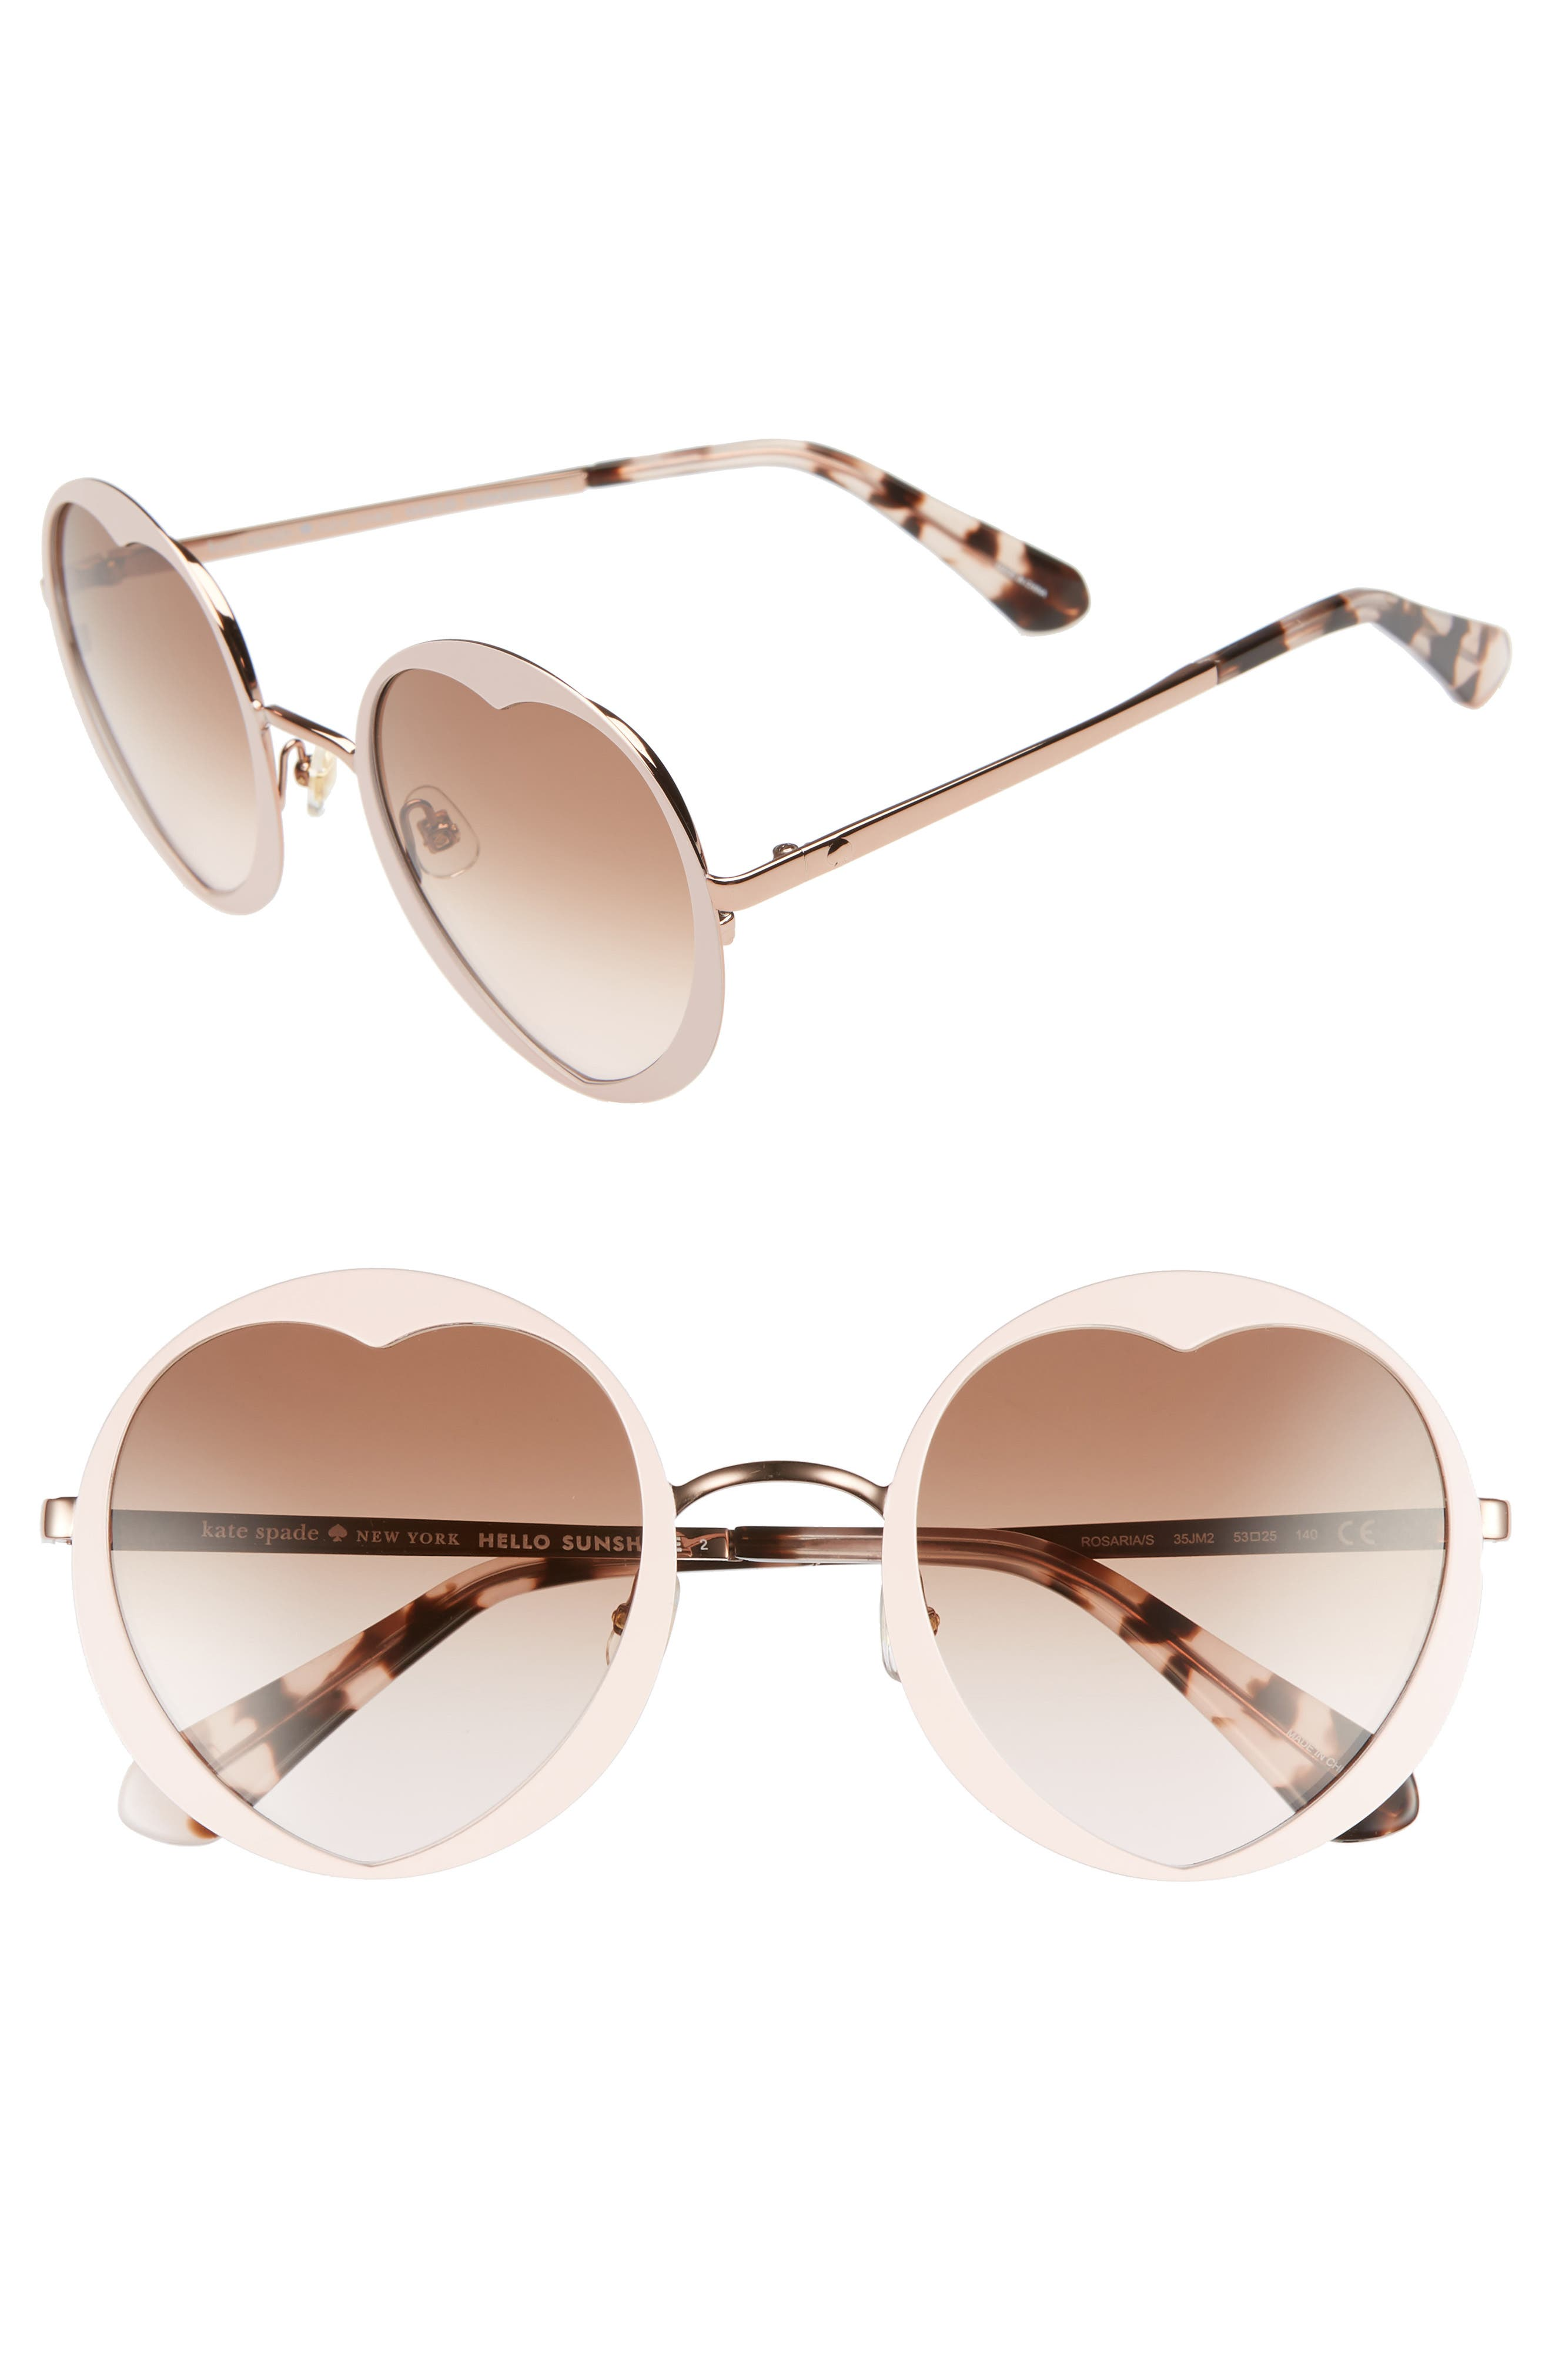 rosaria 53mm heart cutout lens sunglasses,                             Main thumbnail 1, color,                             Pink/ Havana